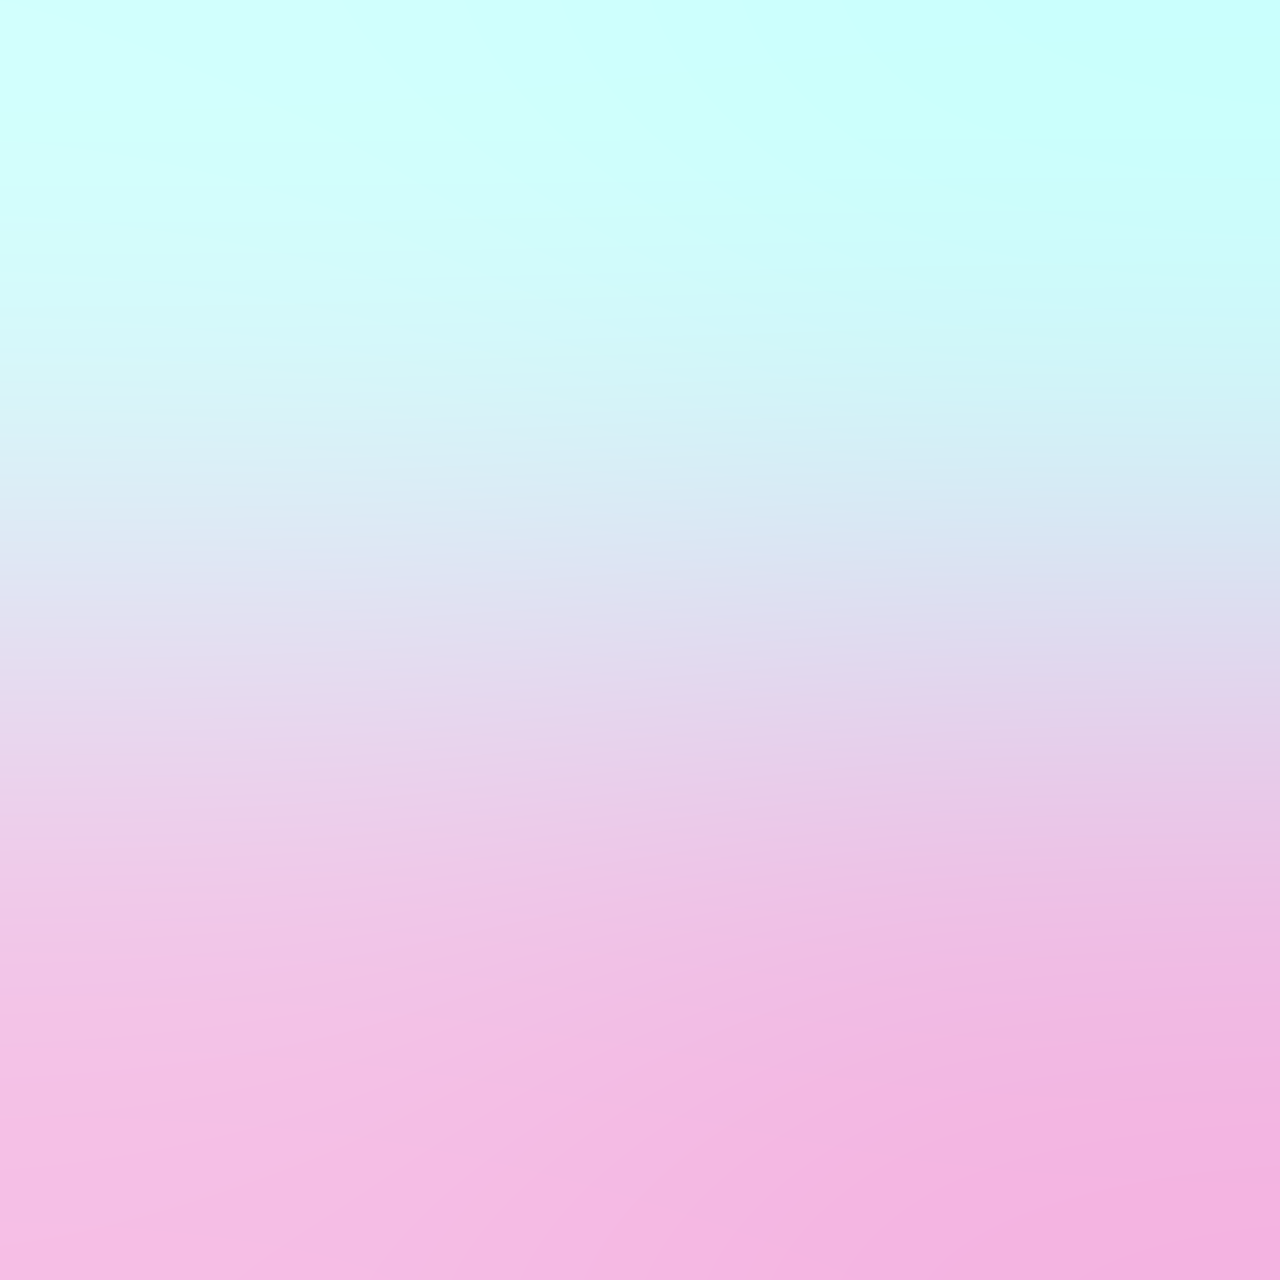 colorful gradient 43354 - Pink And Blue PNG